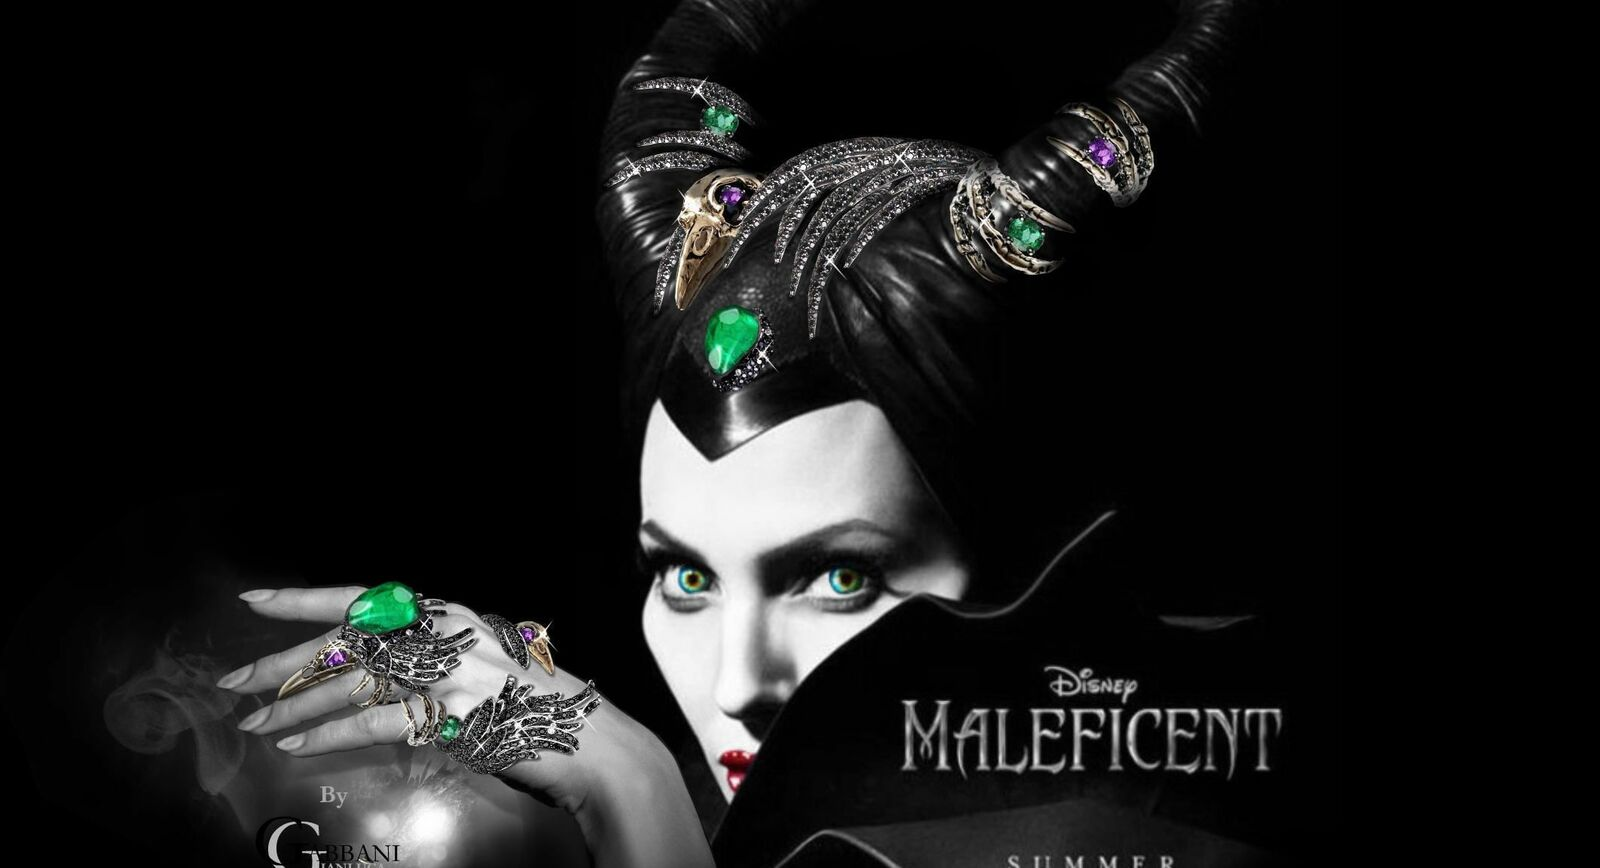 Imaginary Jewels for Maleficent